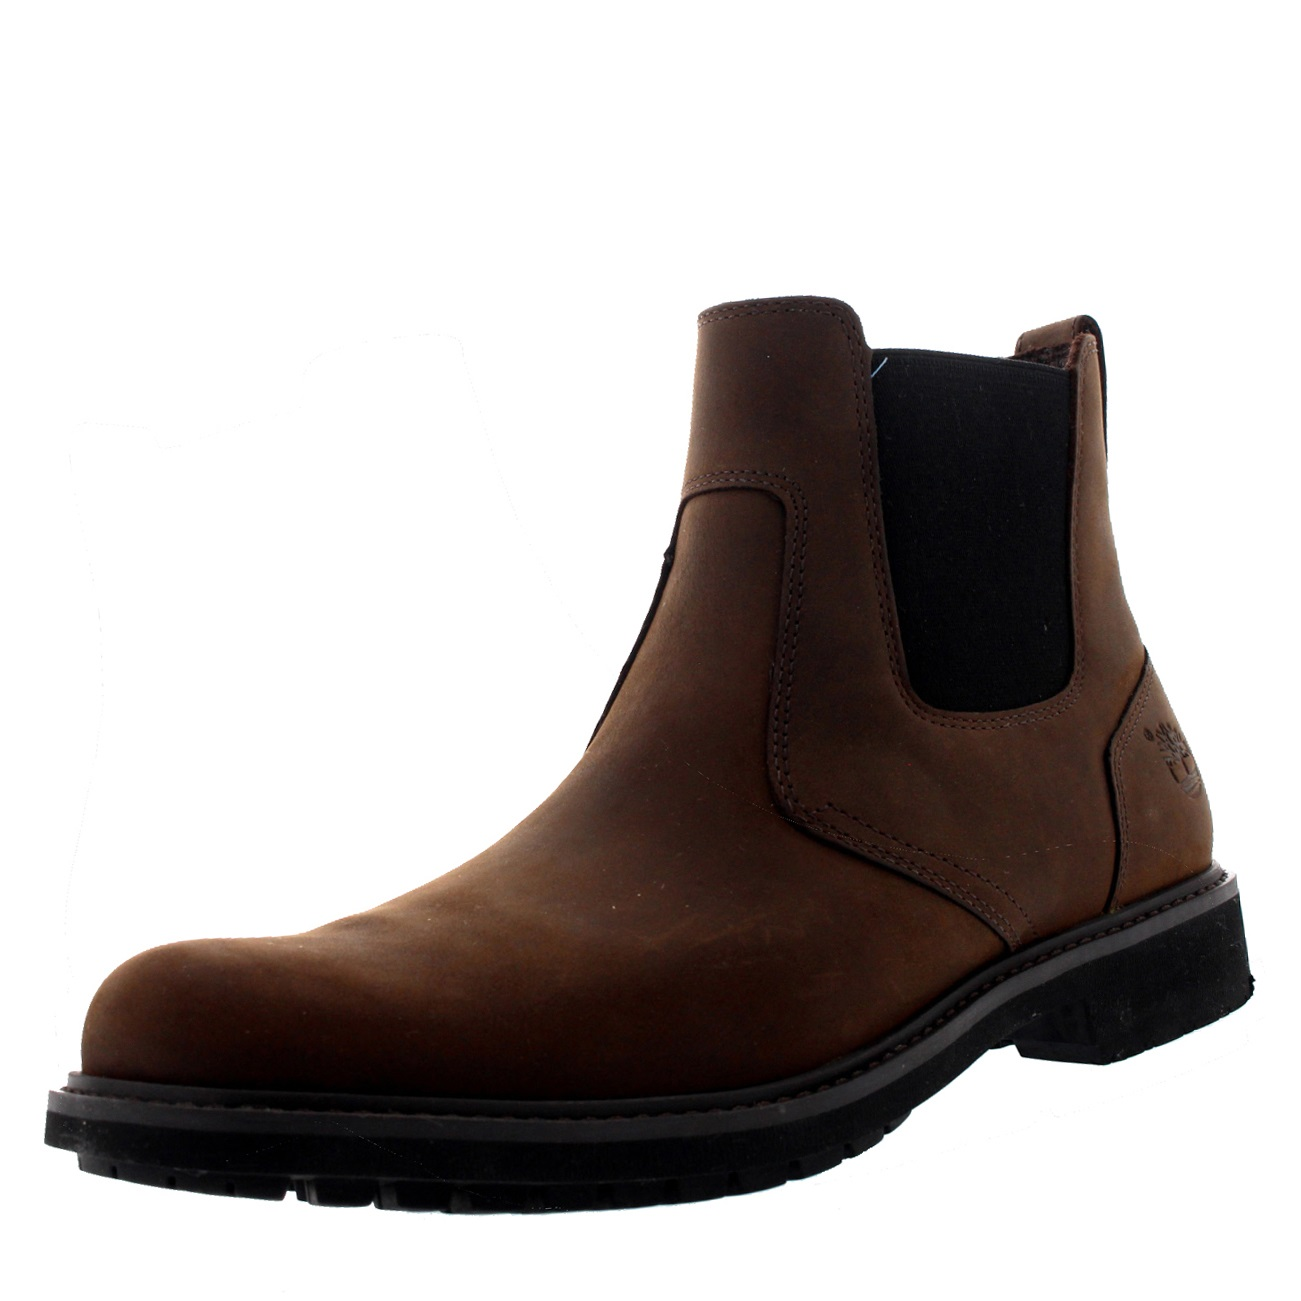 Mens-Timberland-Earthkeepers-Stormbuck-Chelsea-Boot-Leather-Ankle-